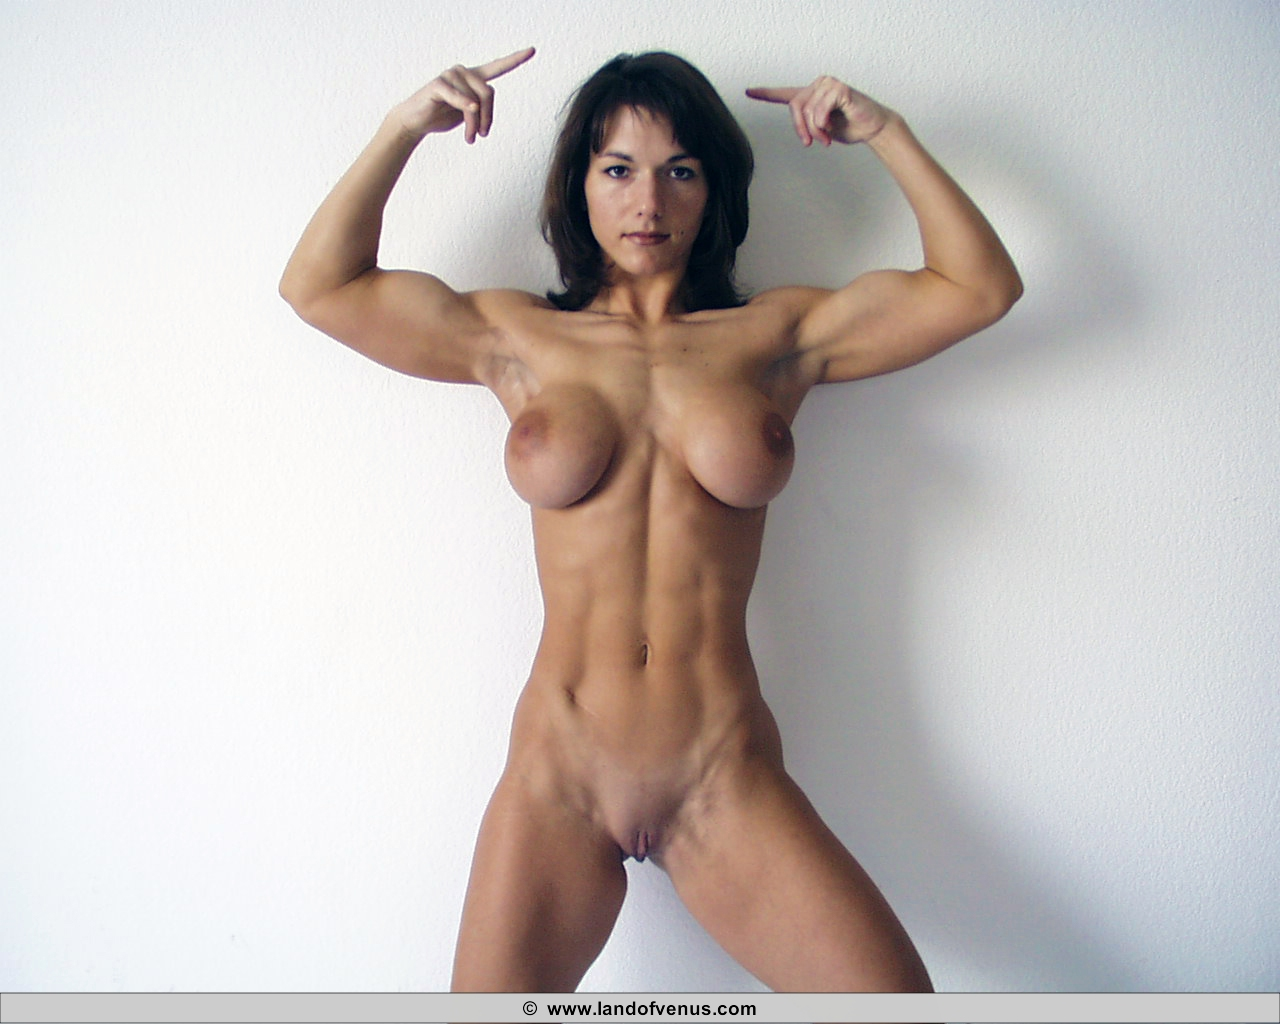 Female bodybuilder topless